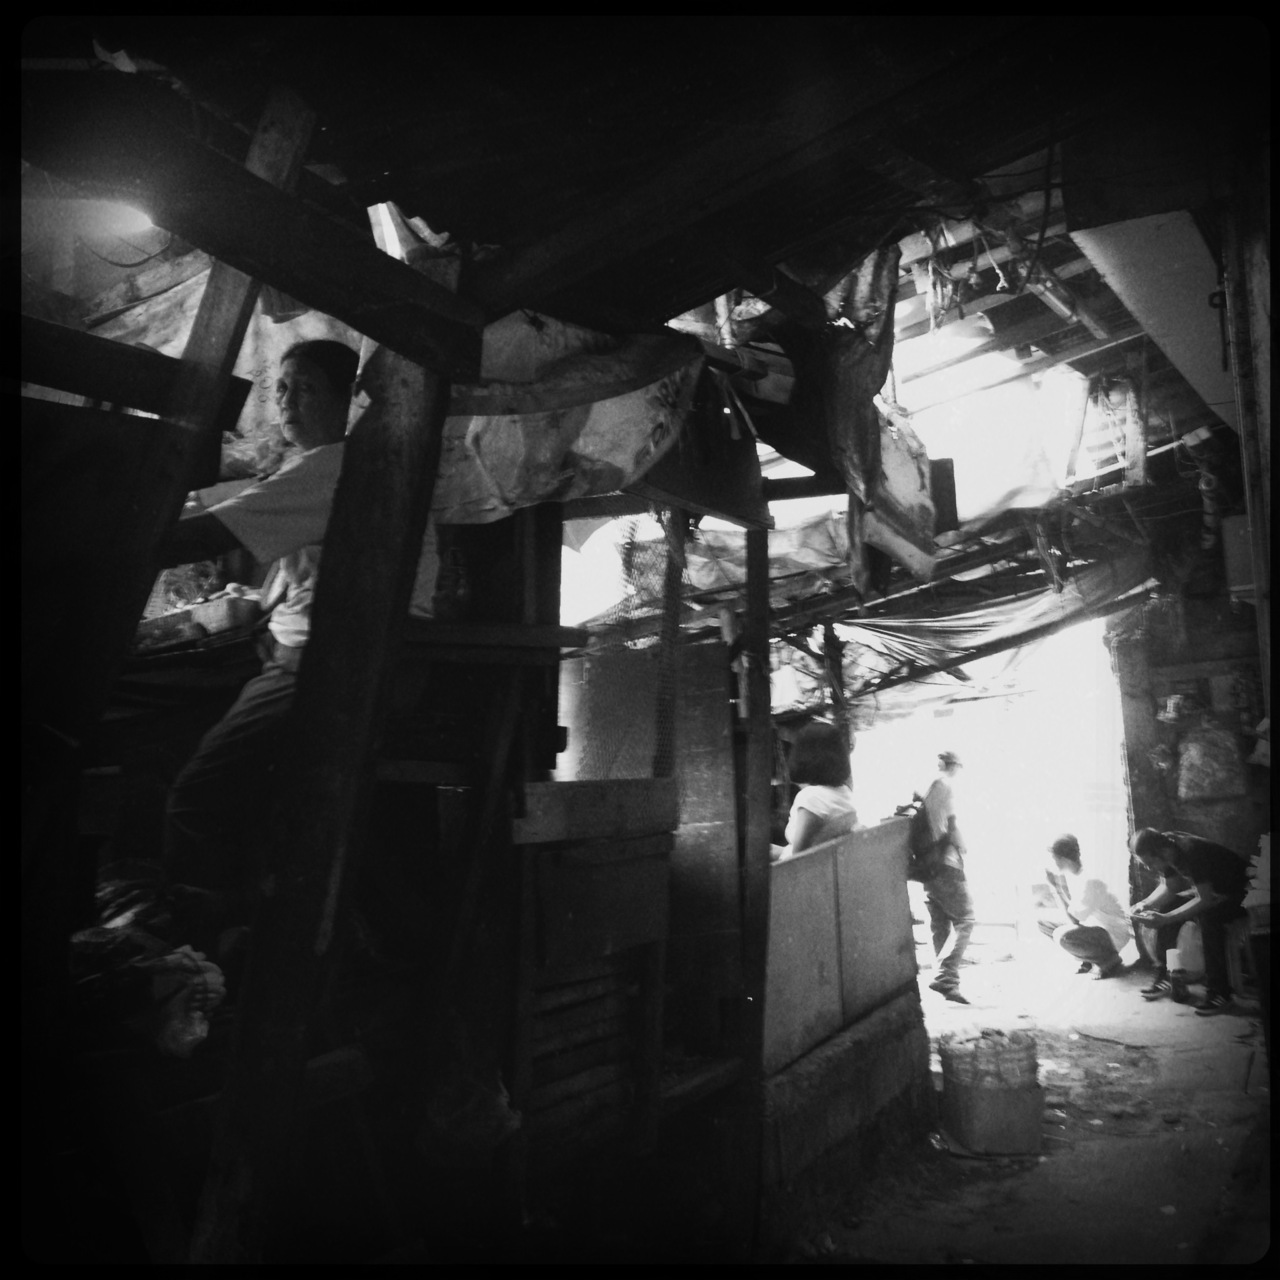 A place where stolen steel is the key to survival #photojournalism #hipstamatic #poverty